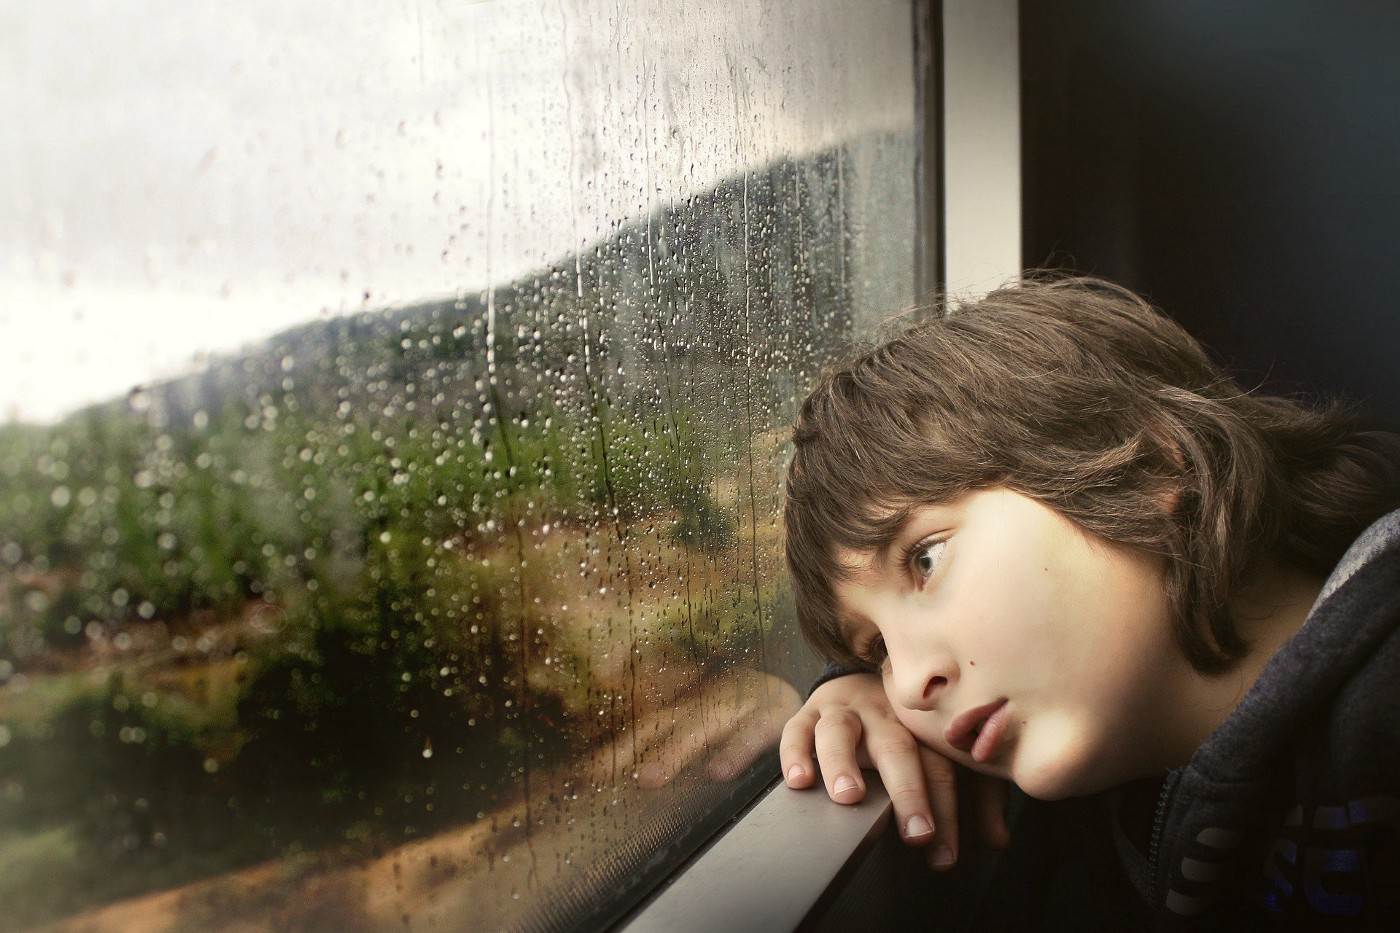 Boy leaning on inside of train window looking bored